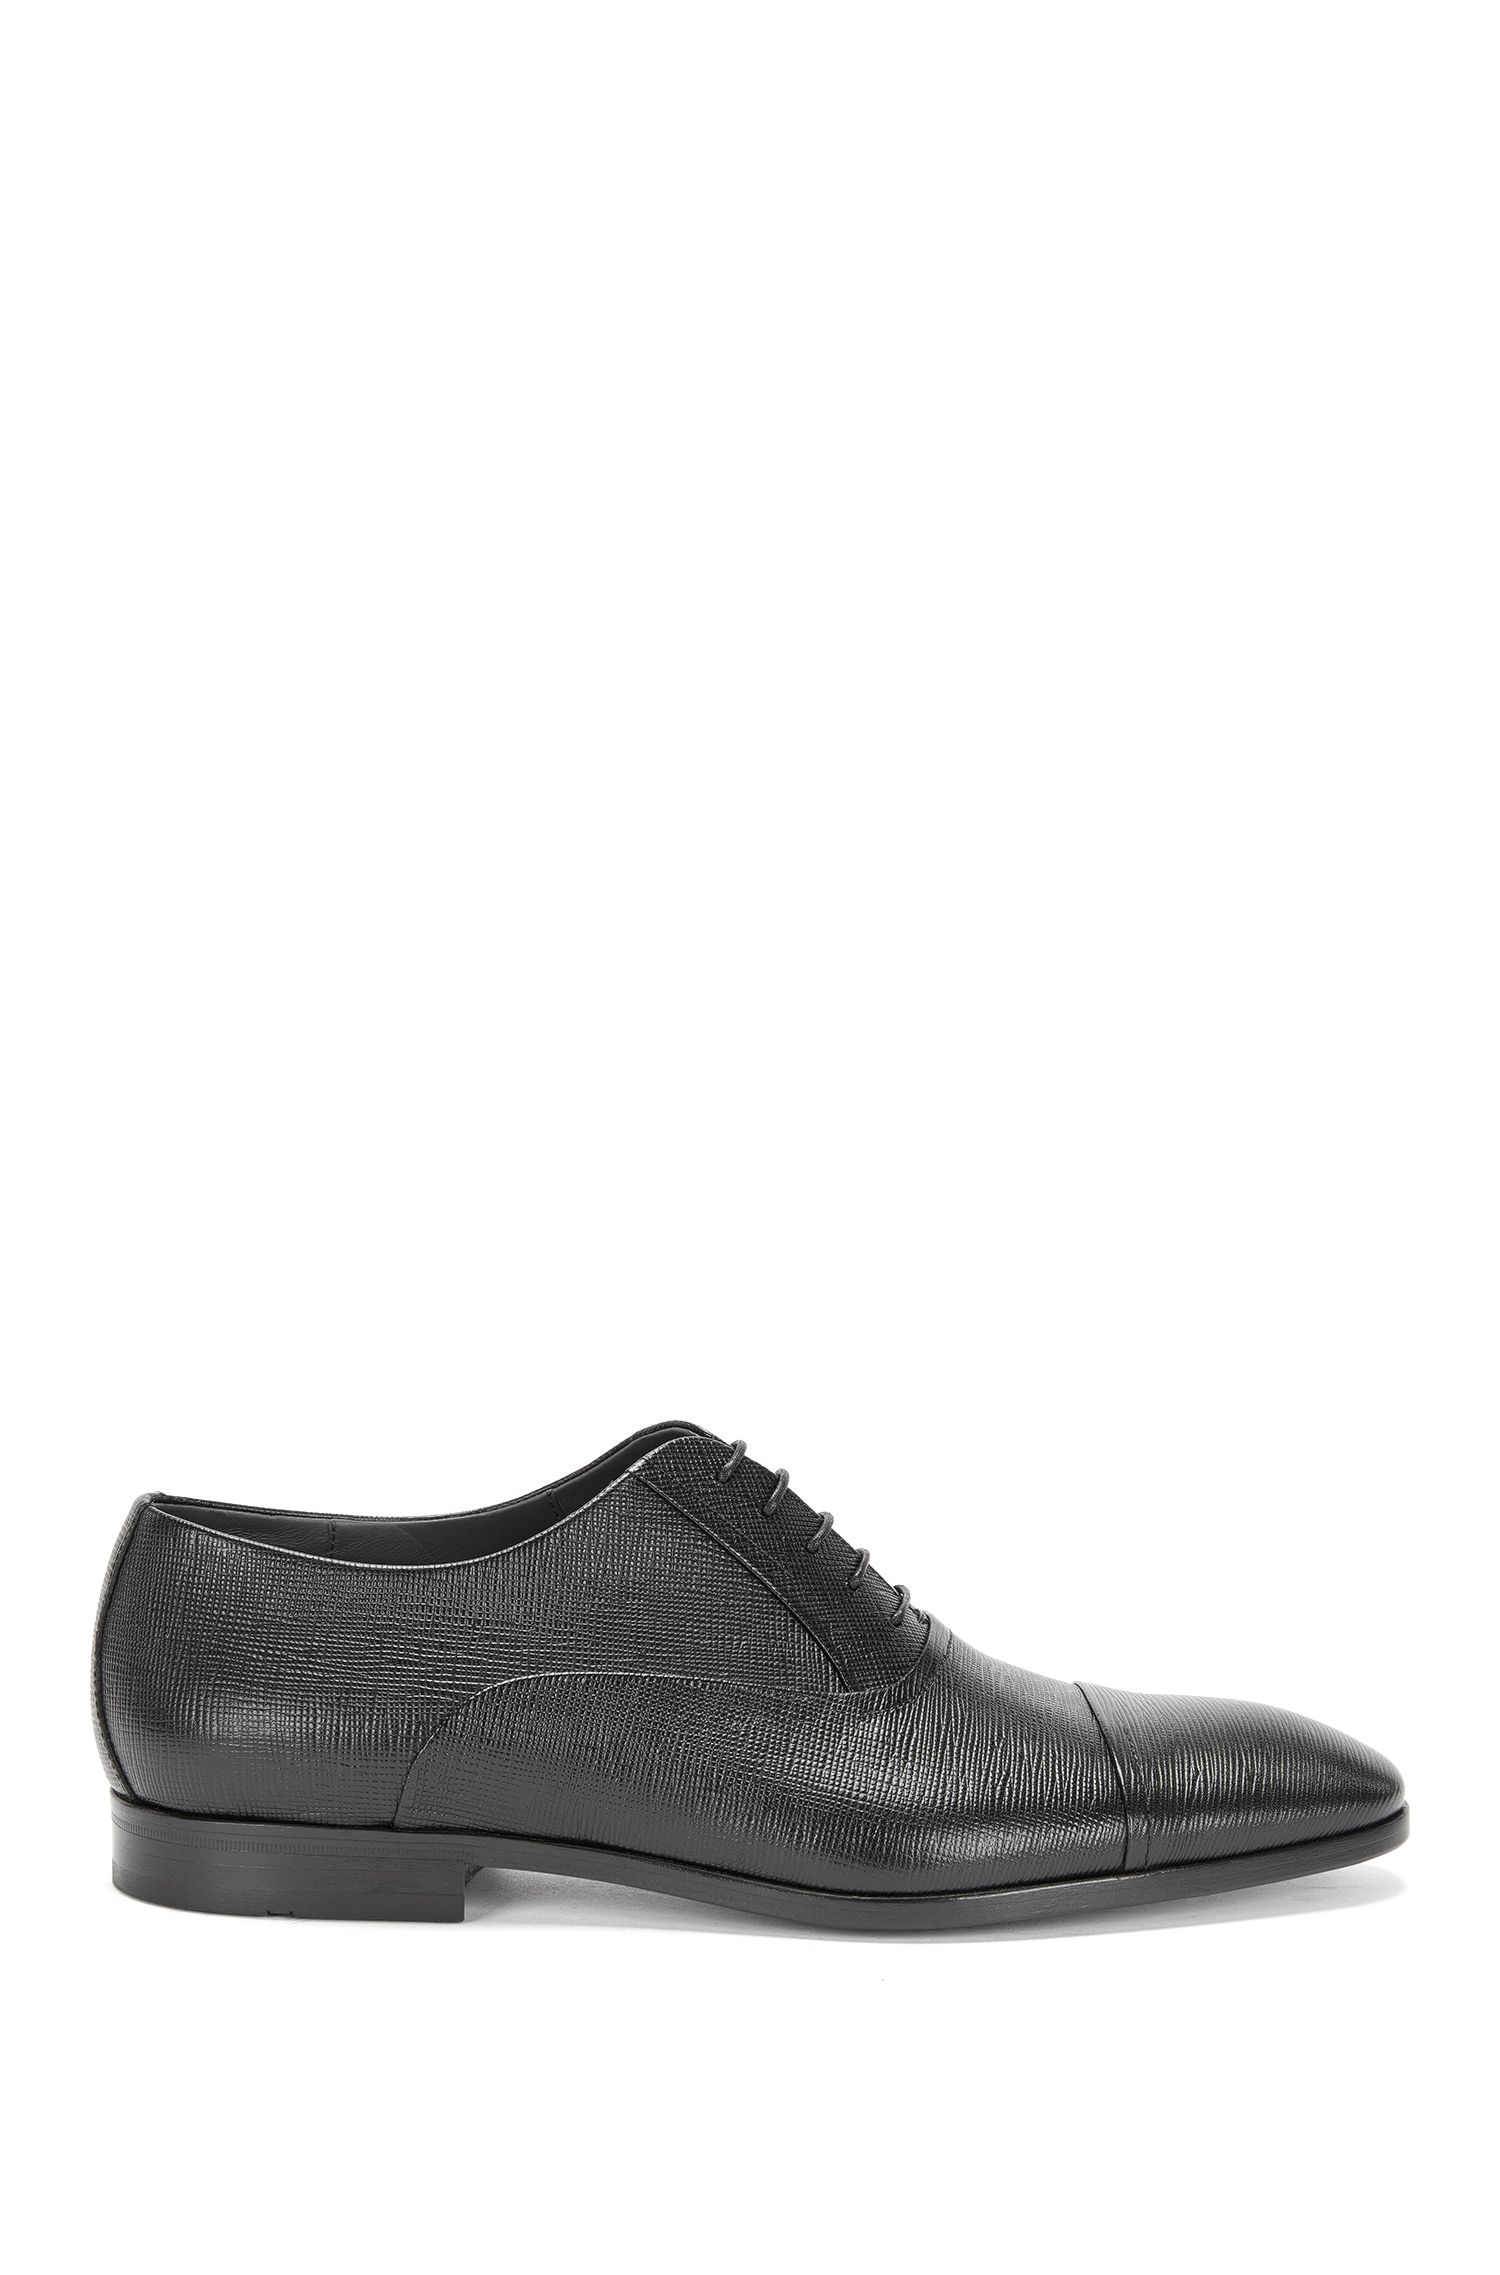 'Eveprin' | Italian Leather Oxford Dress Shoes